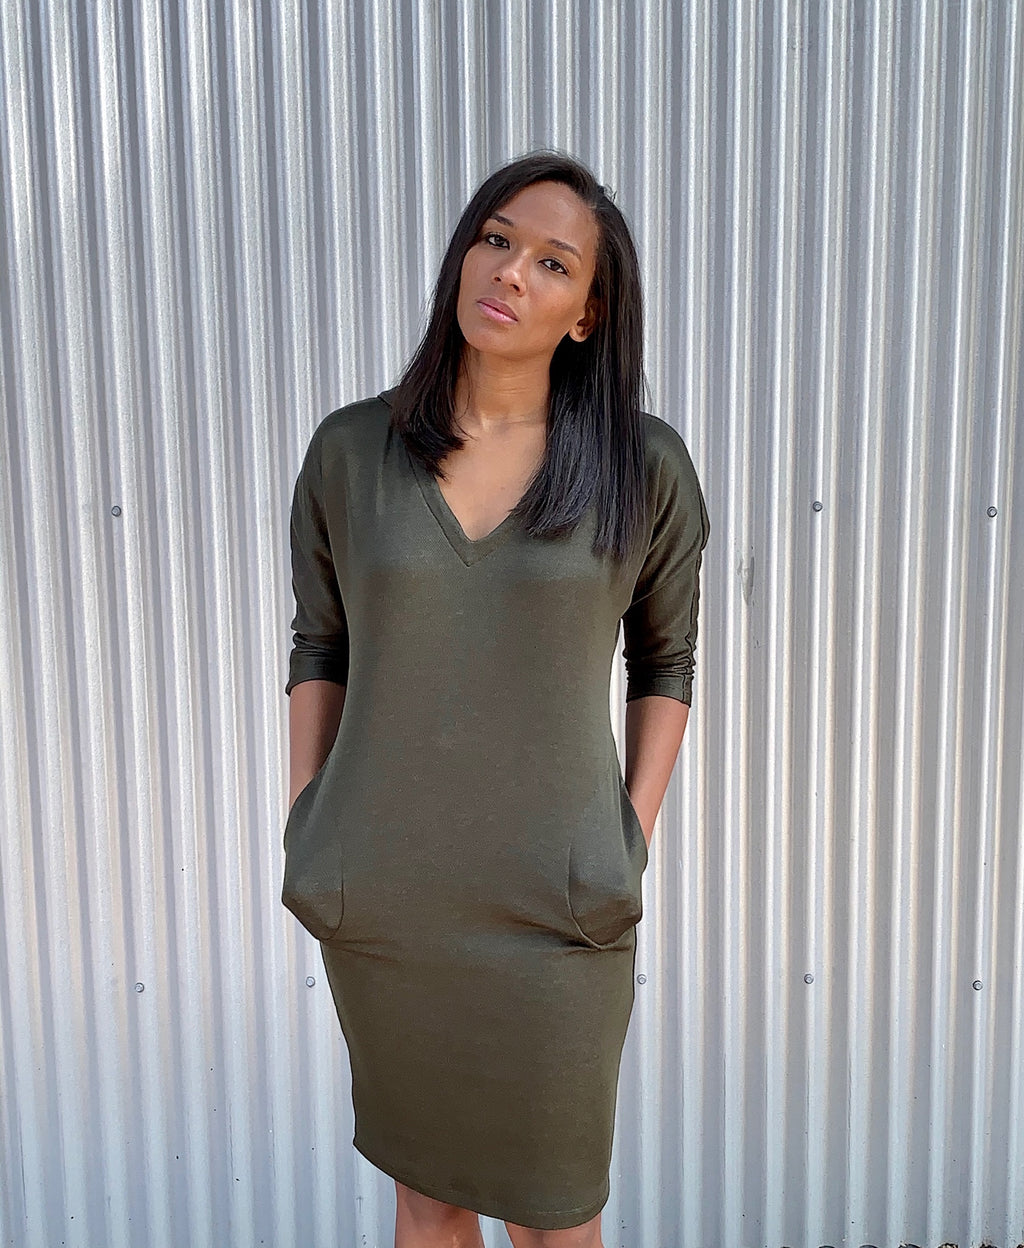 Cool Soror Hoodie Dress With Pockets - Olive Green - CS-20